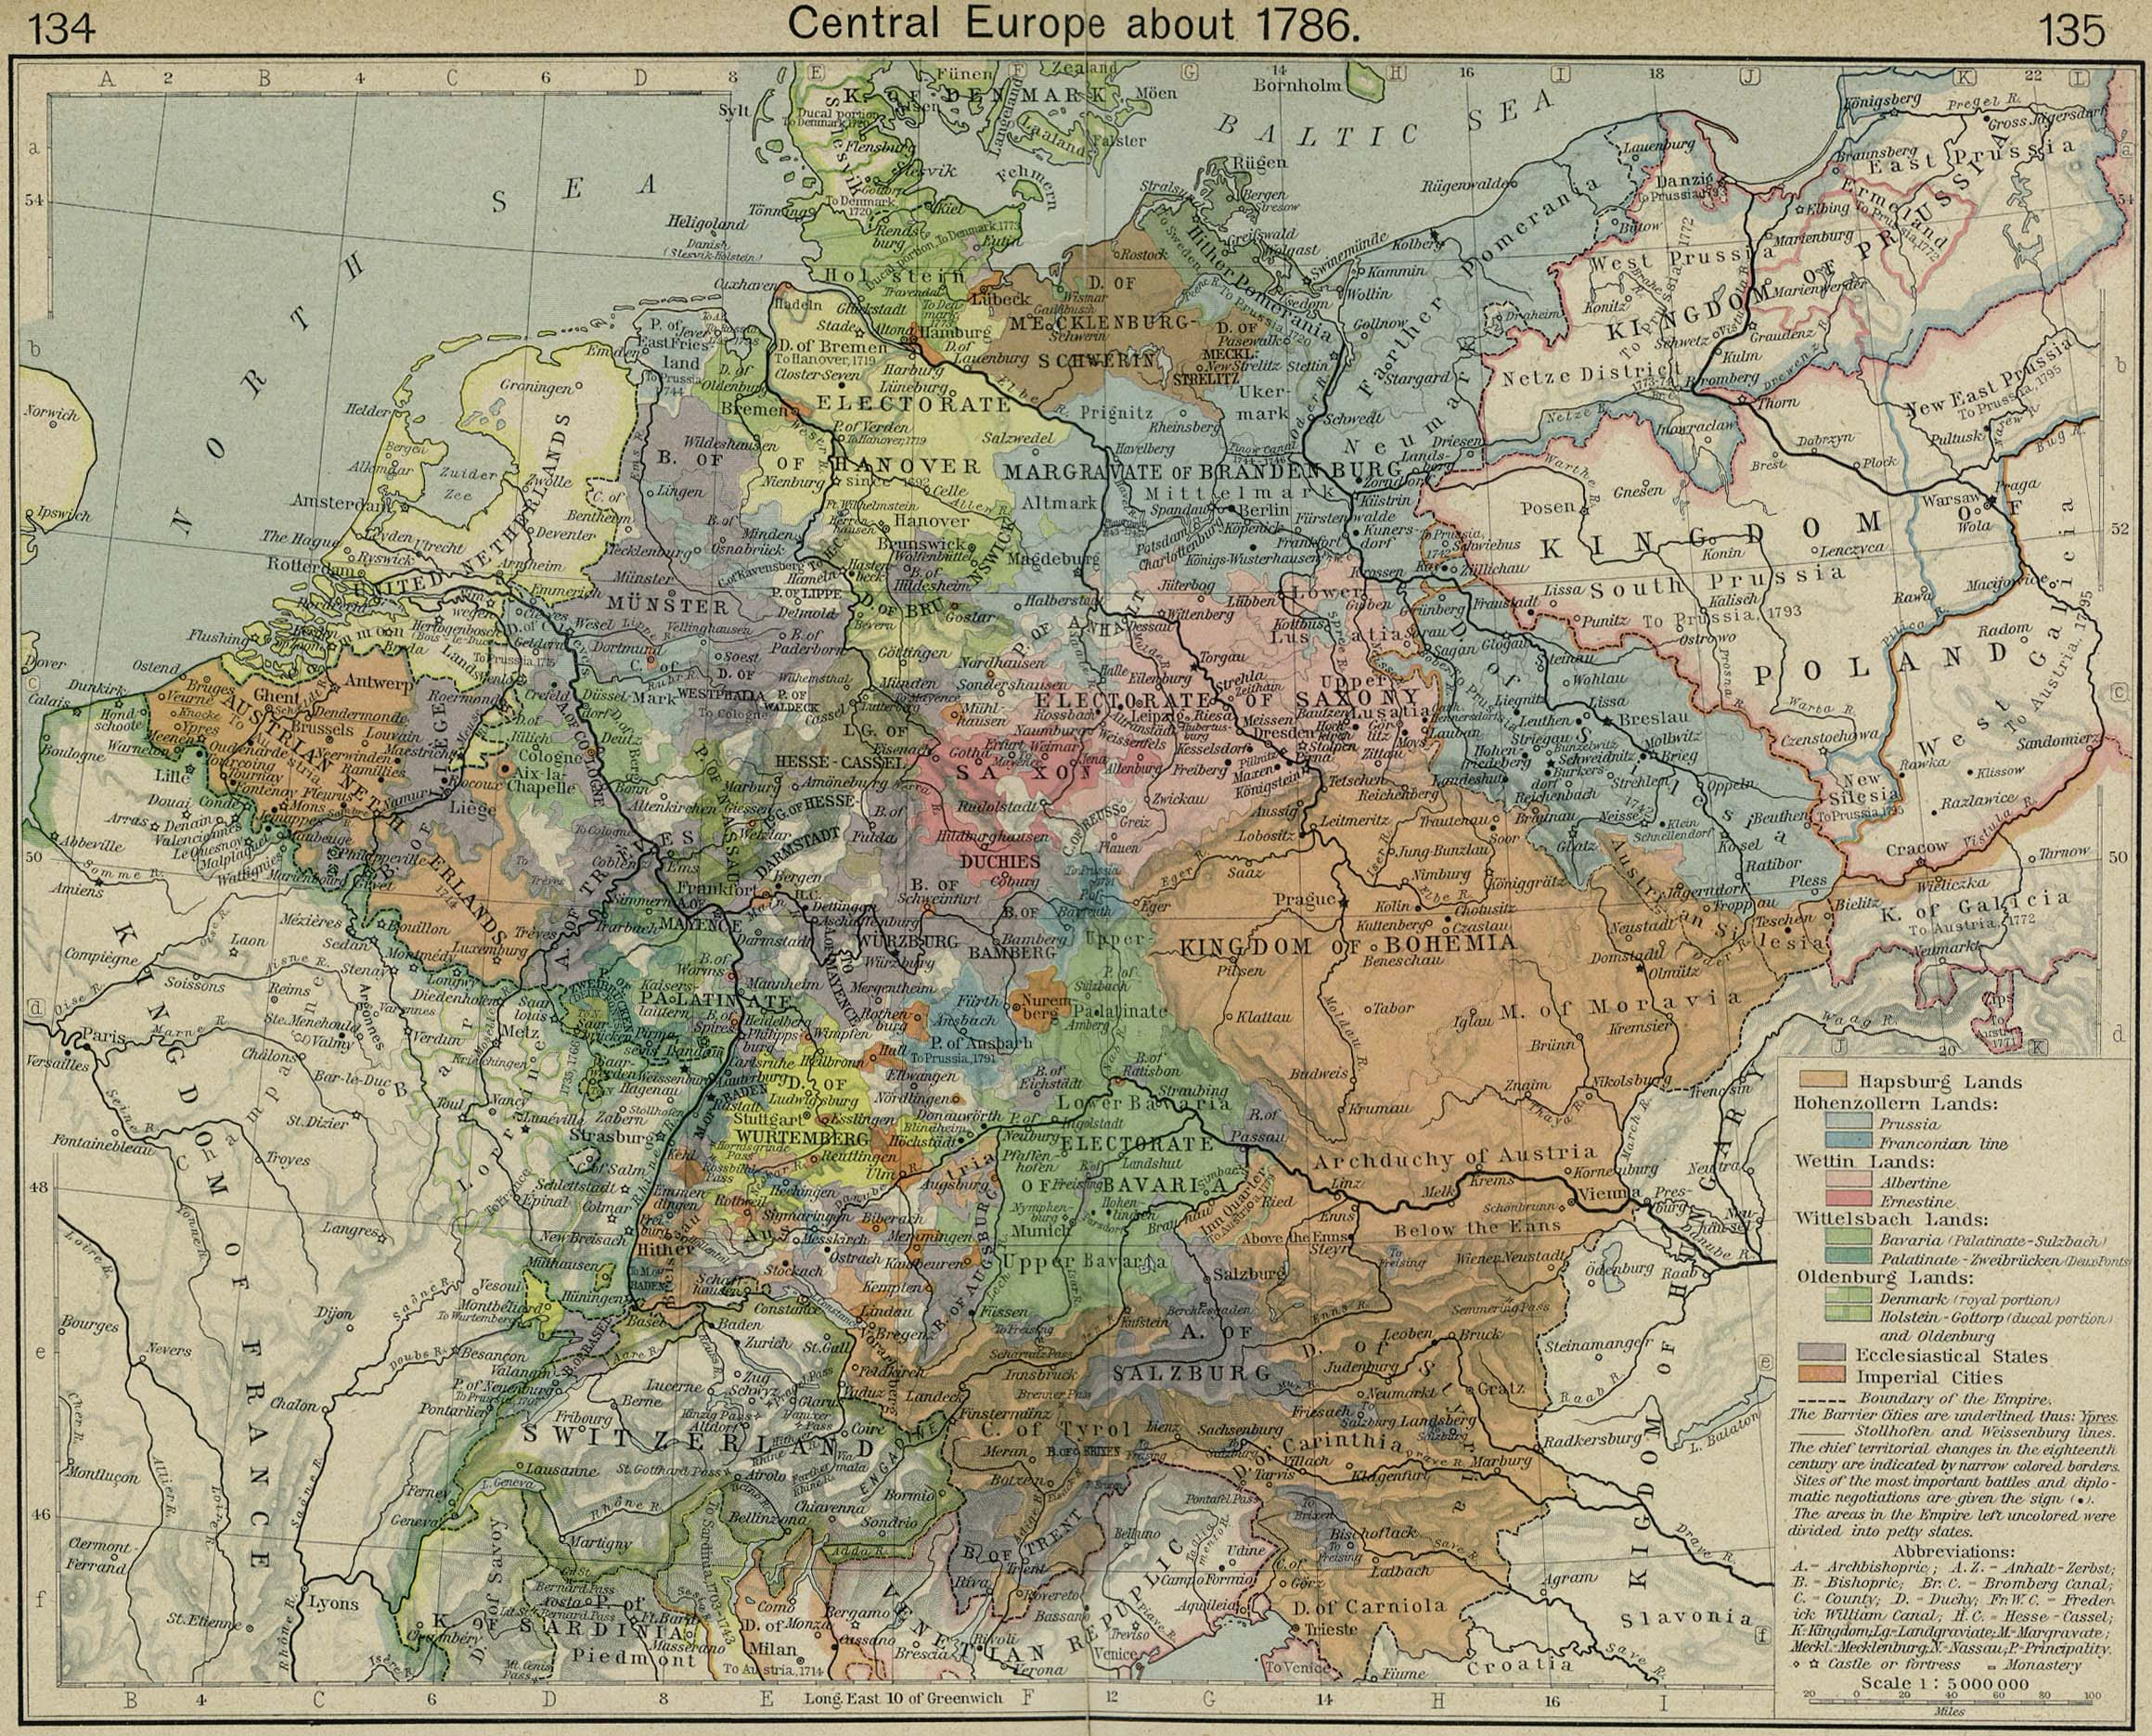 Map of Central Europe about 1786